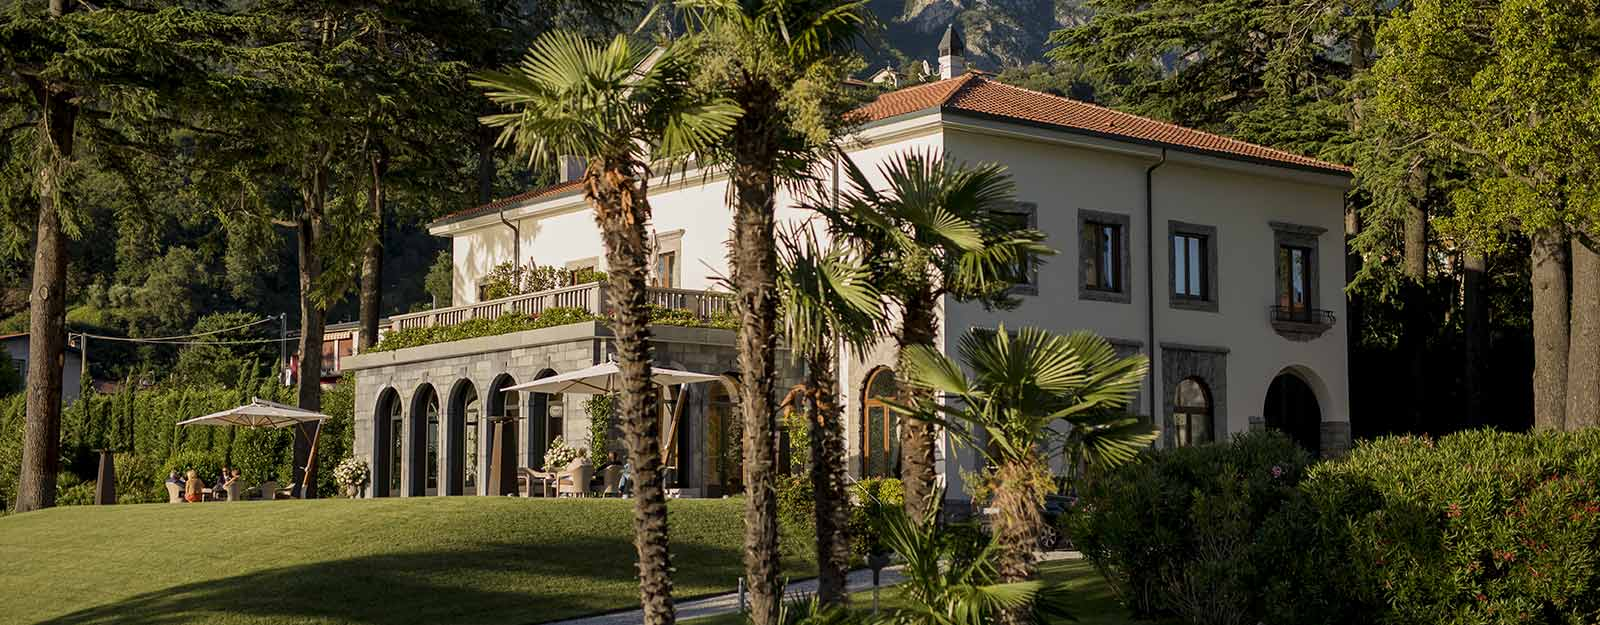 villa lario resort como weddings 3